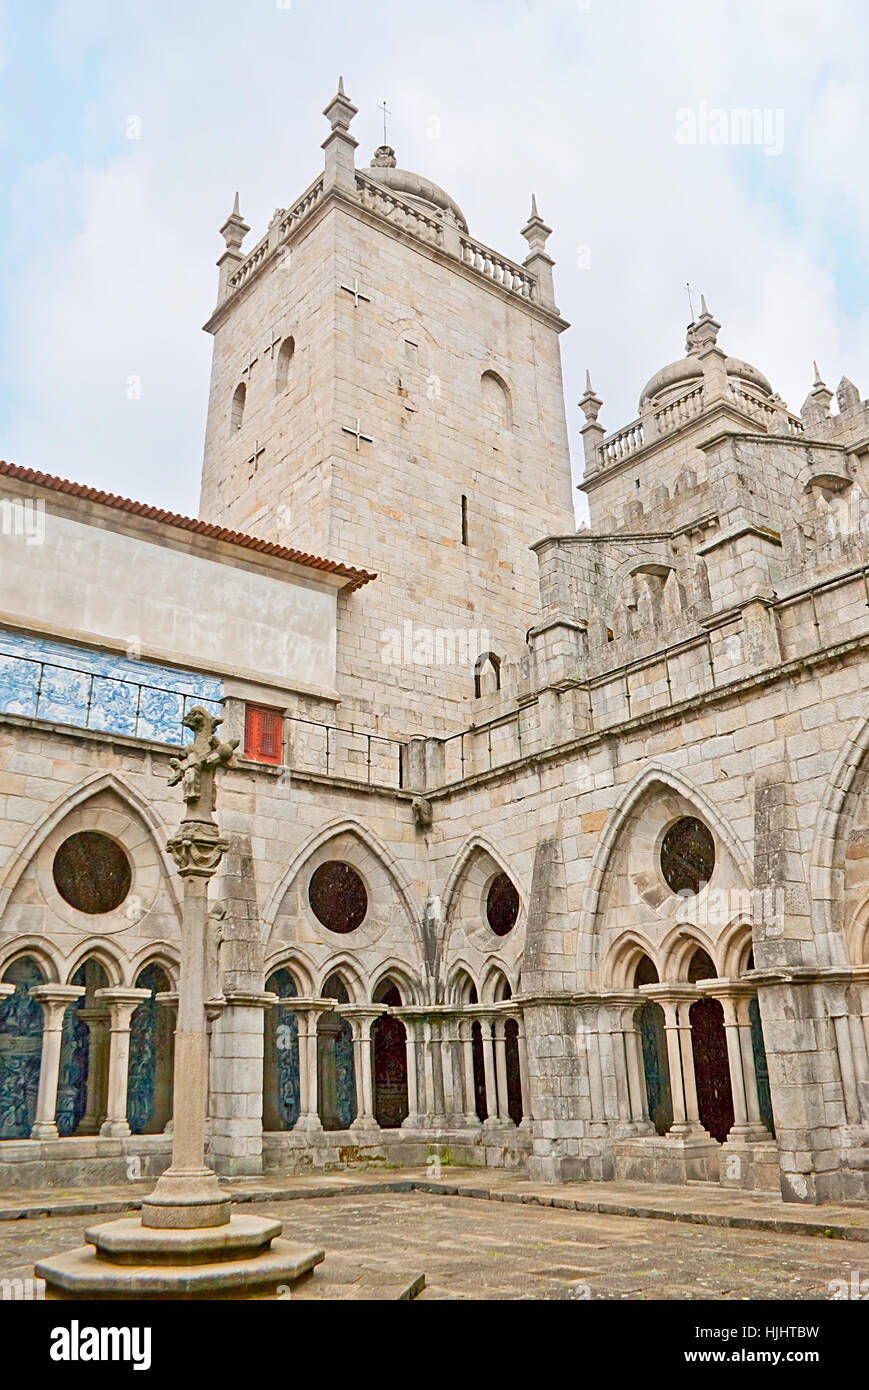 PORTO, PORTUGAL - APRIL 30, 2012: Se Cathedral with its medieval cloister is the fine example of the Gothic Style, Stock Photo